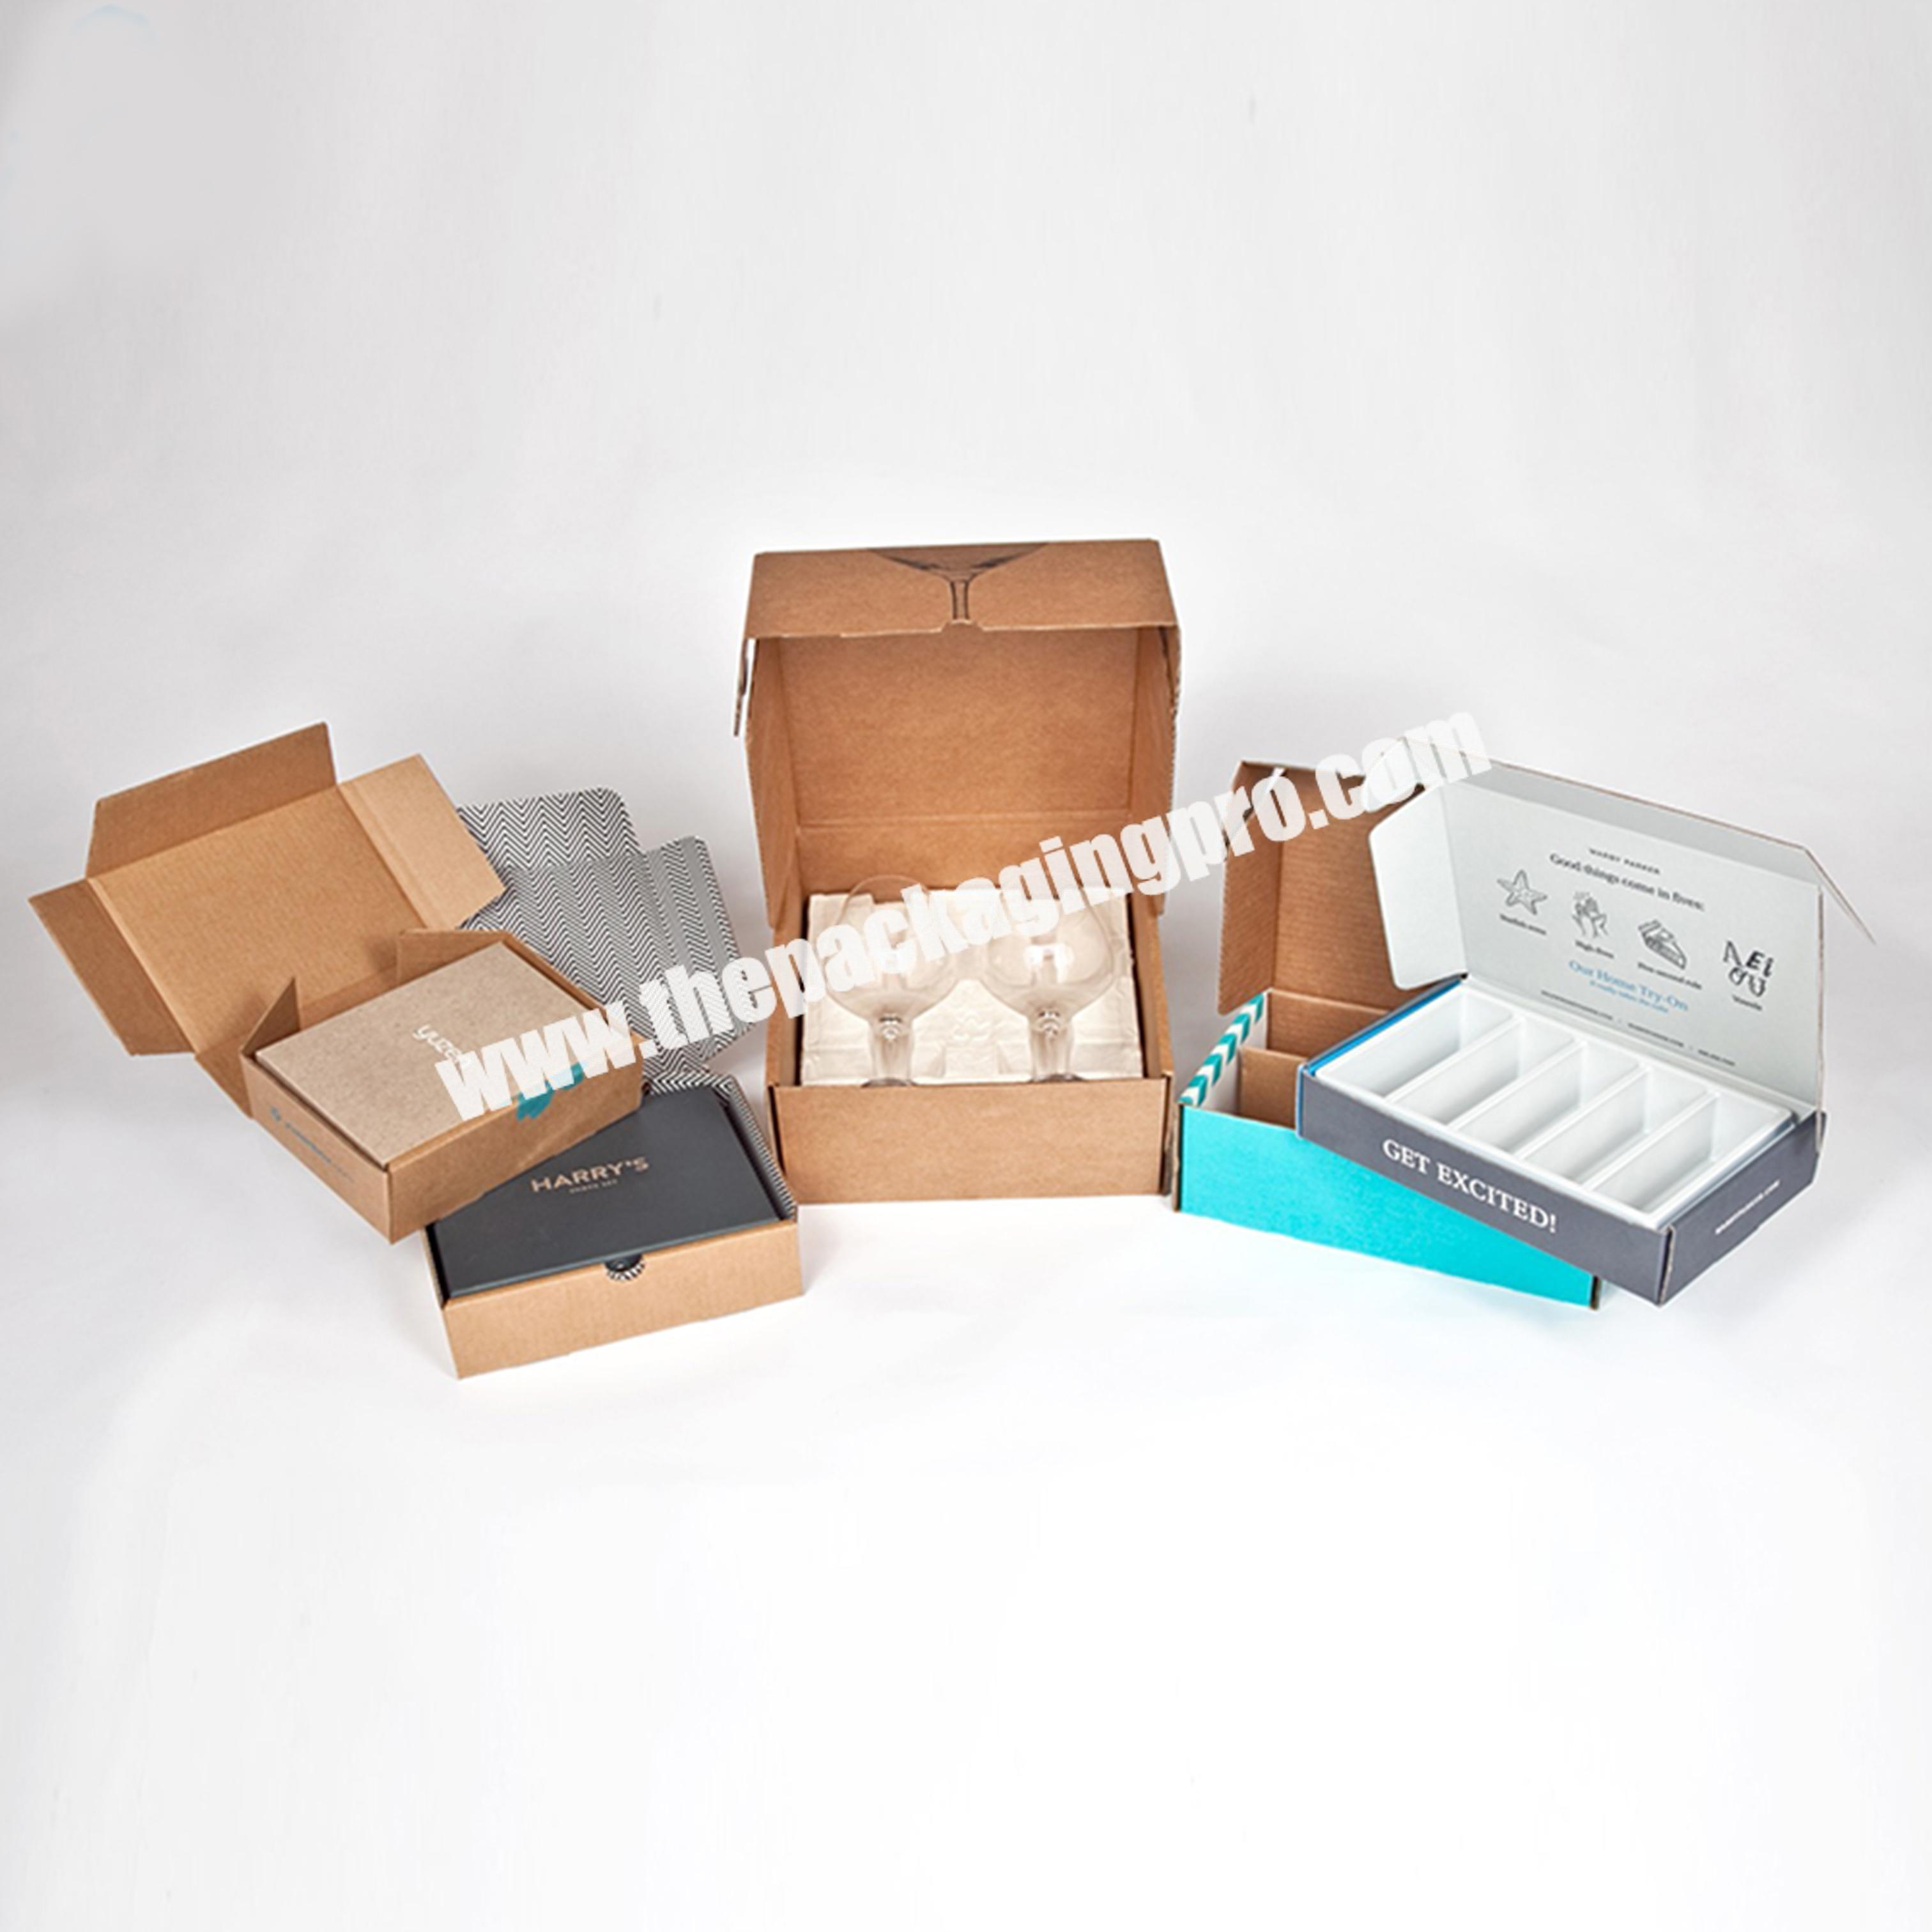 Shop Direct Factory Shipping Paper Postal Box Flute Corrugated Postage Carton Full Black Mailing Box